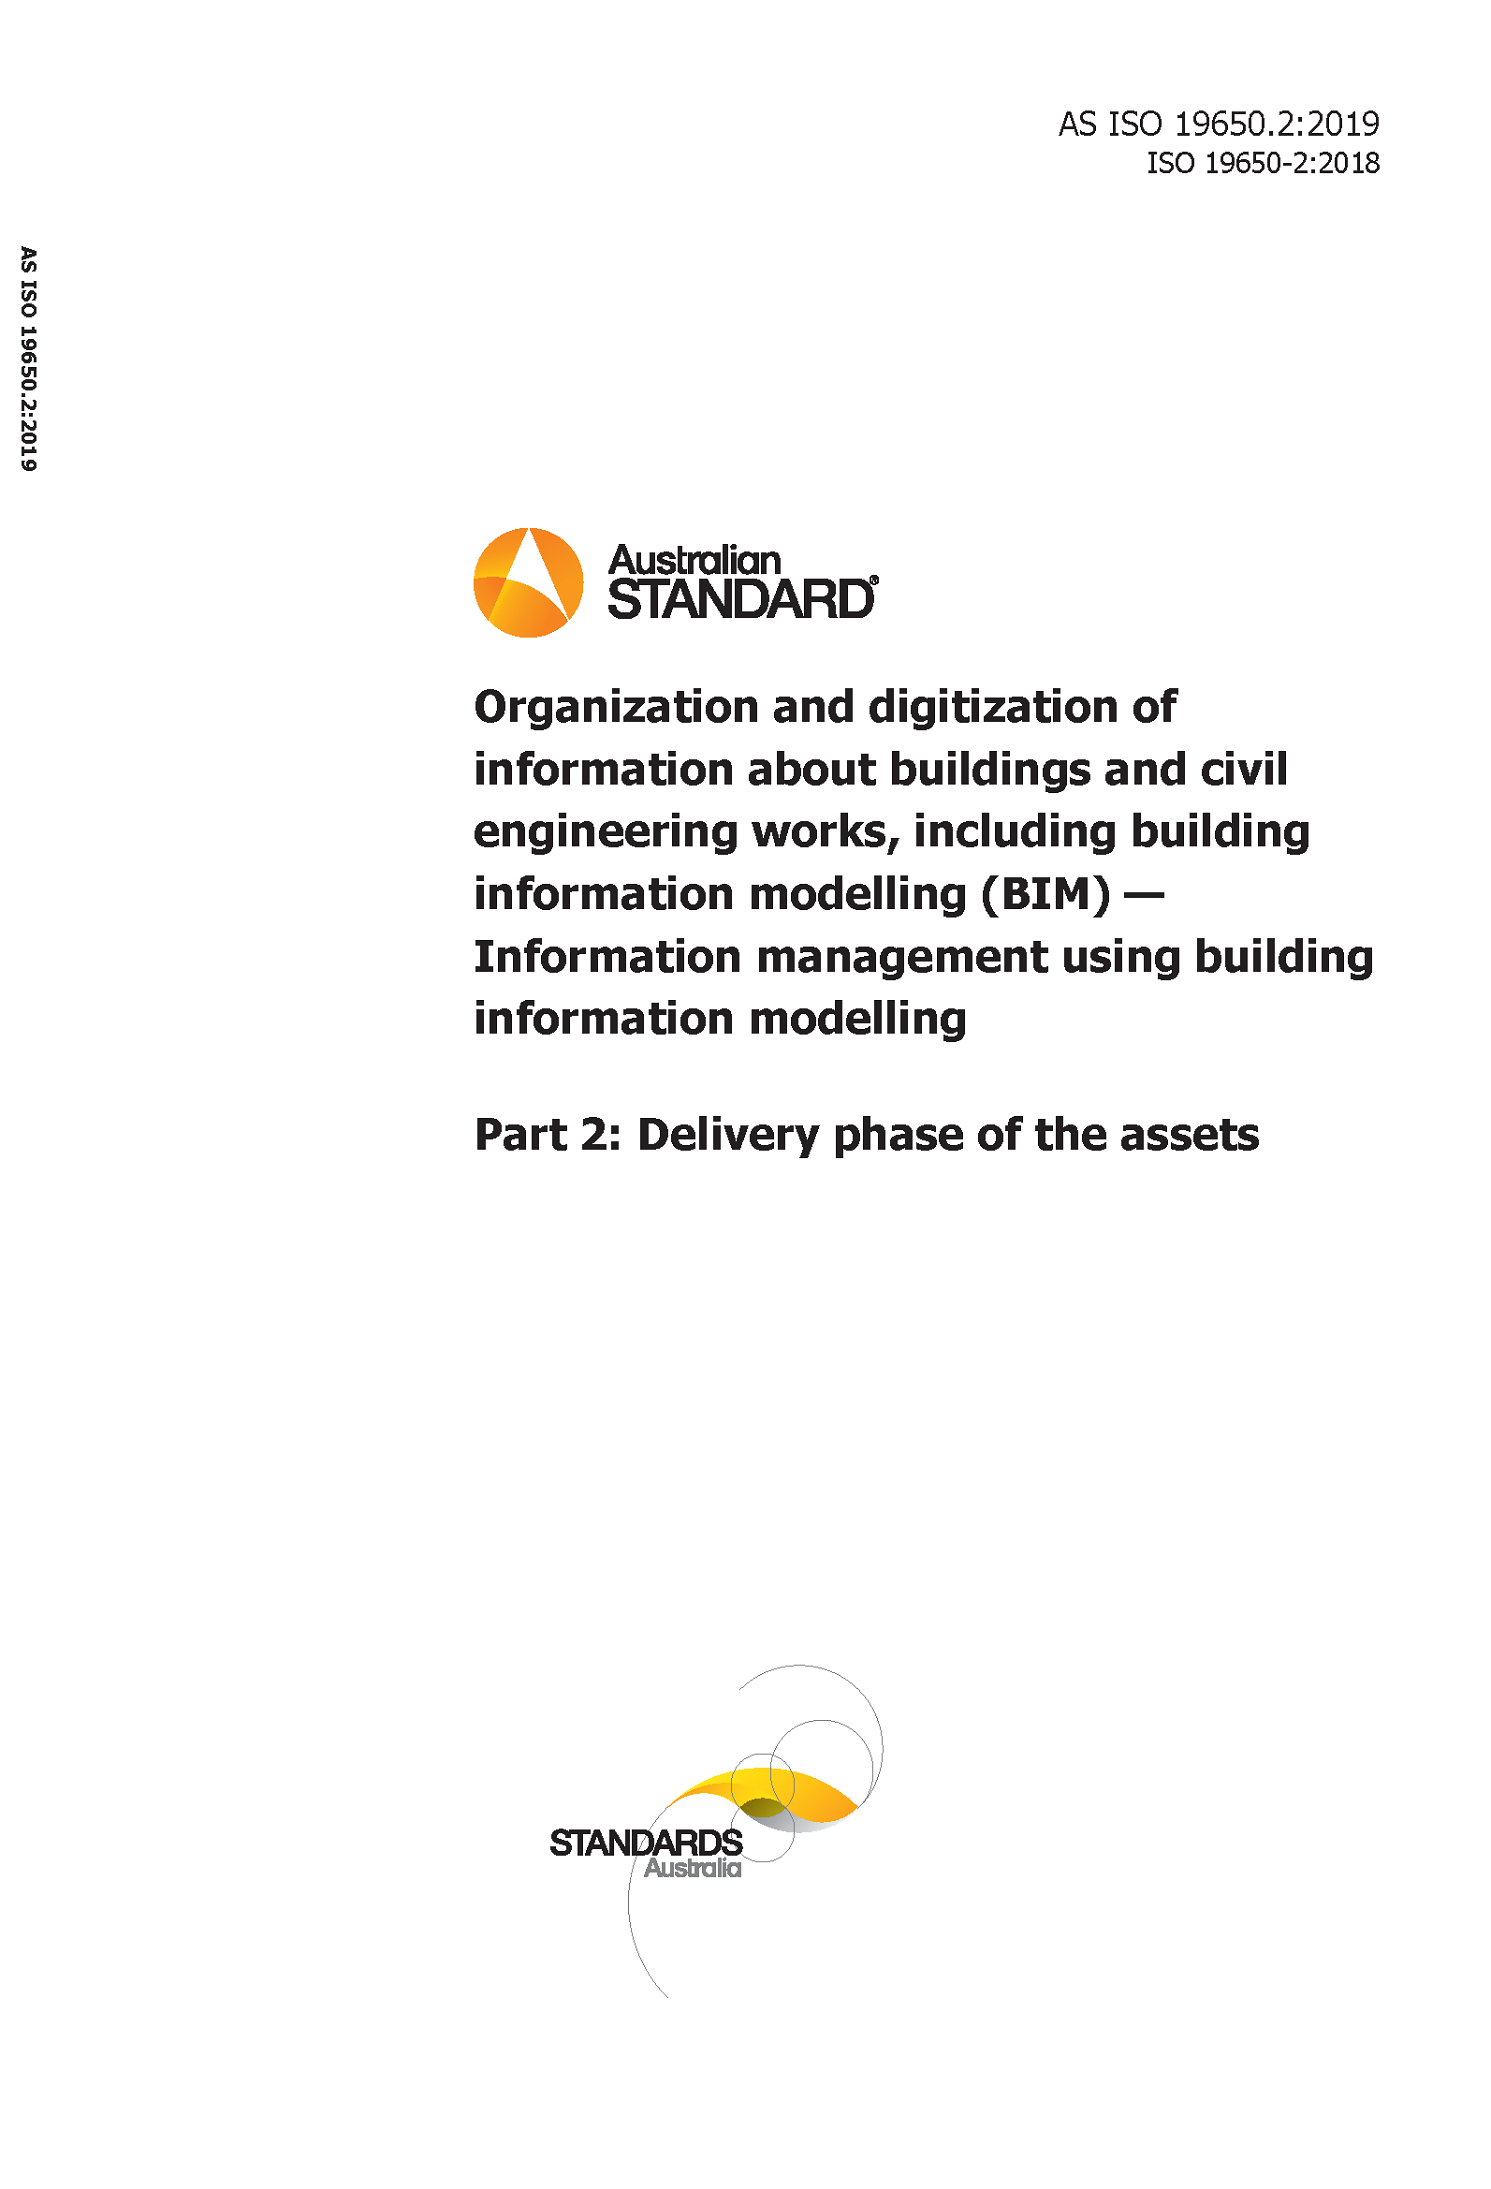 AS ISO 19650.2 cover